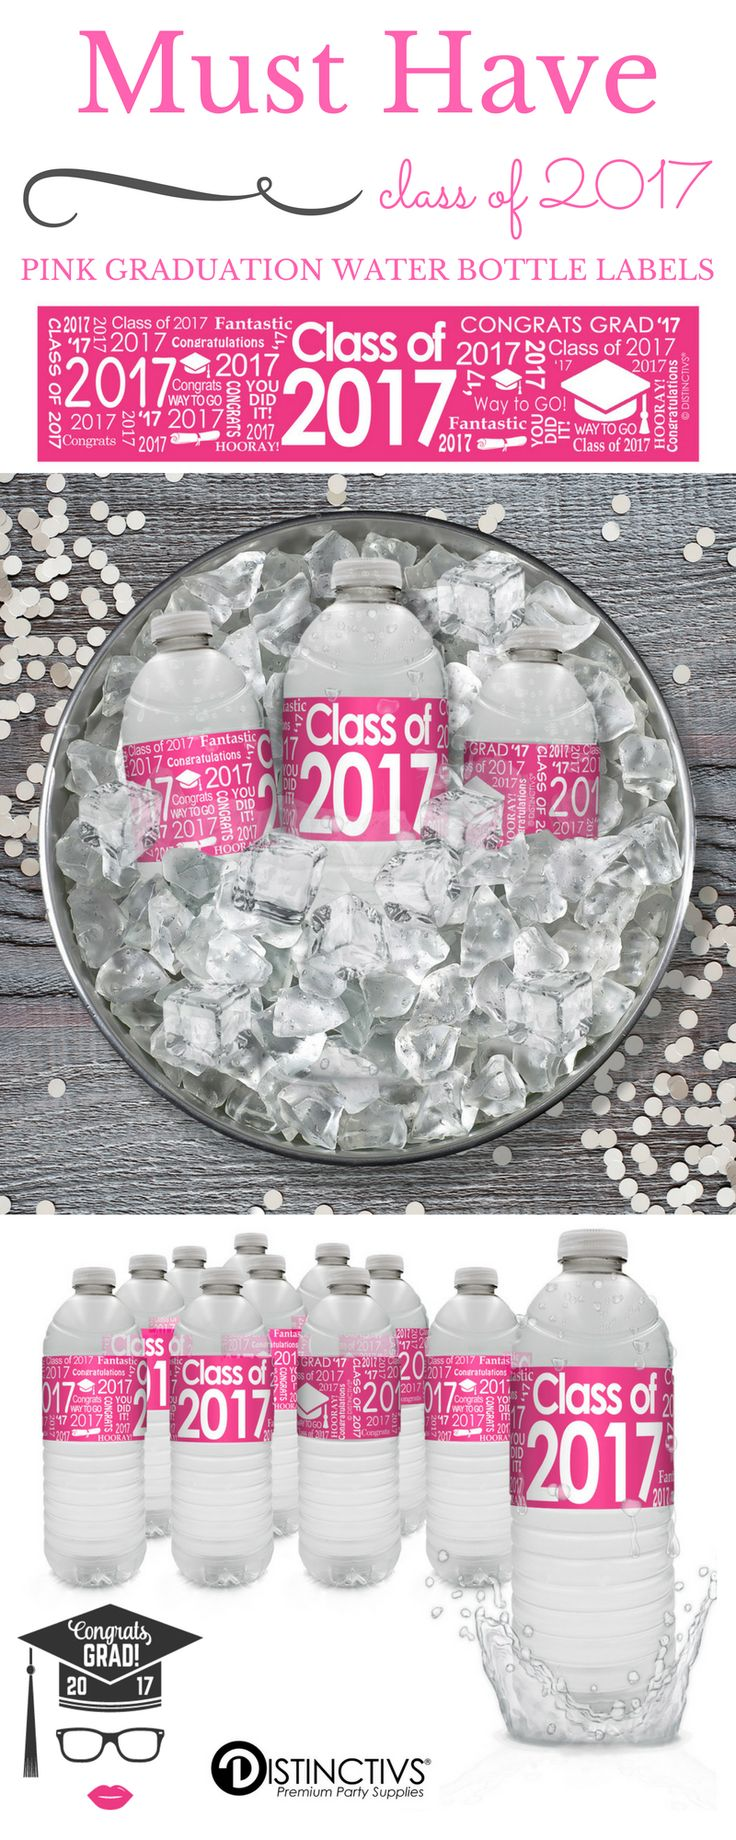 20 Pink Graduation Party Water Bottle Label Stickers for the Class of 2017.